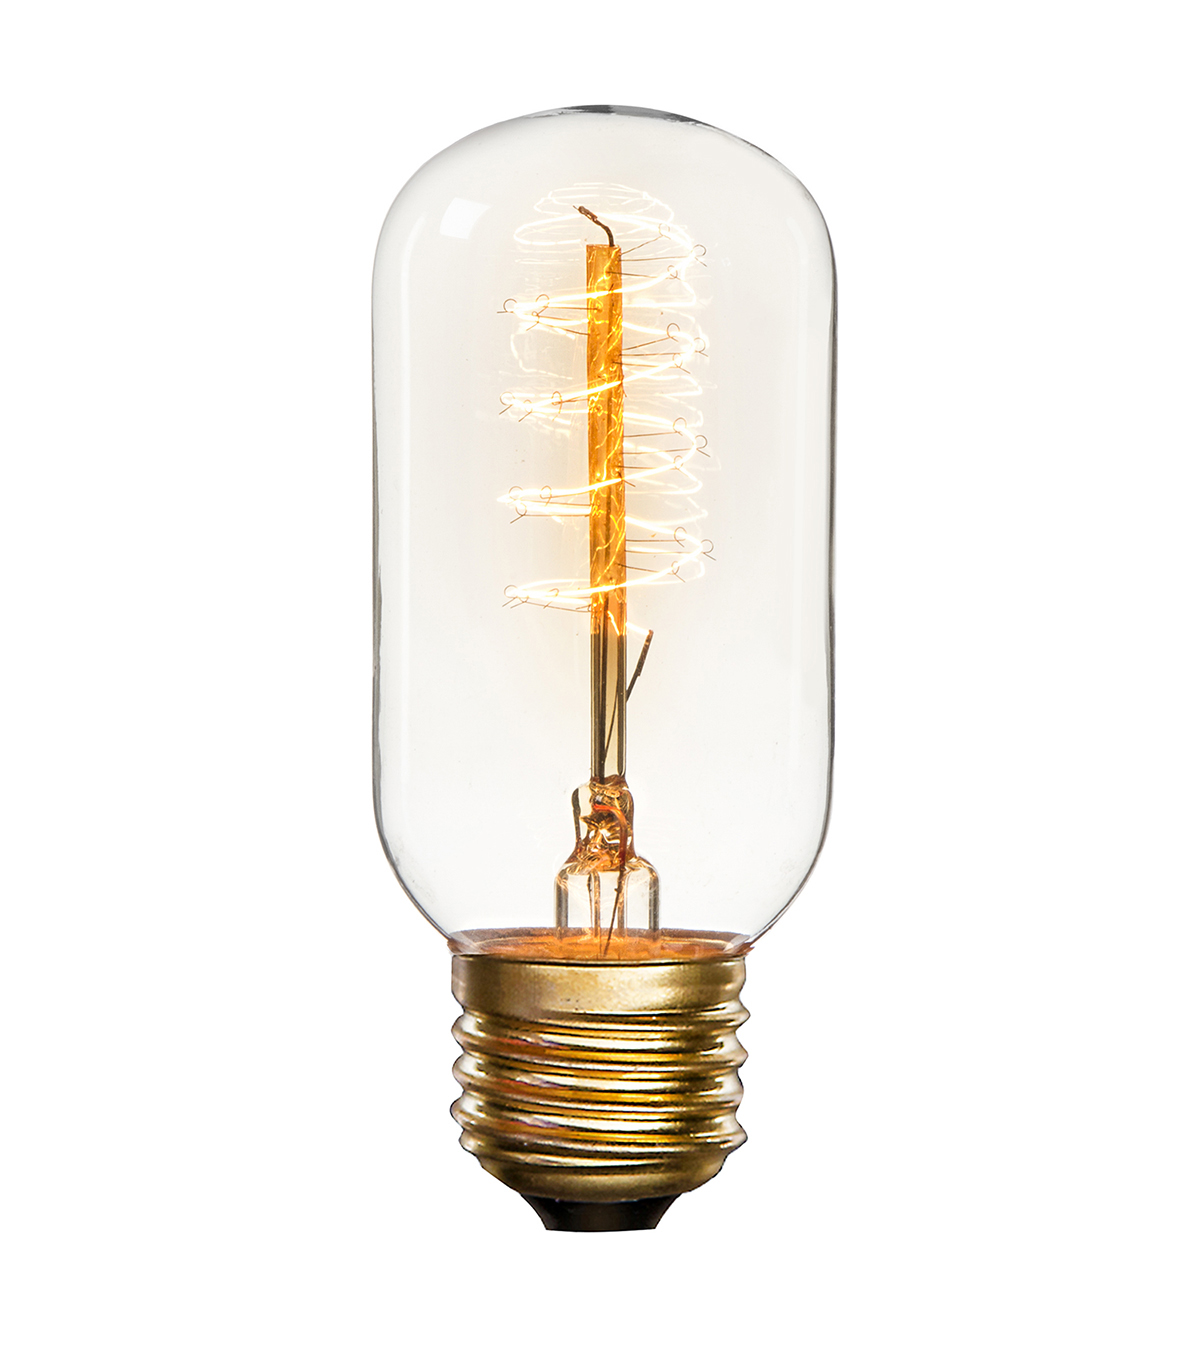 Hudson 43 Edison Bulb Oblong with Swirl Filament